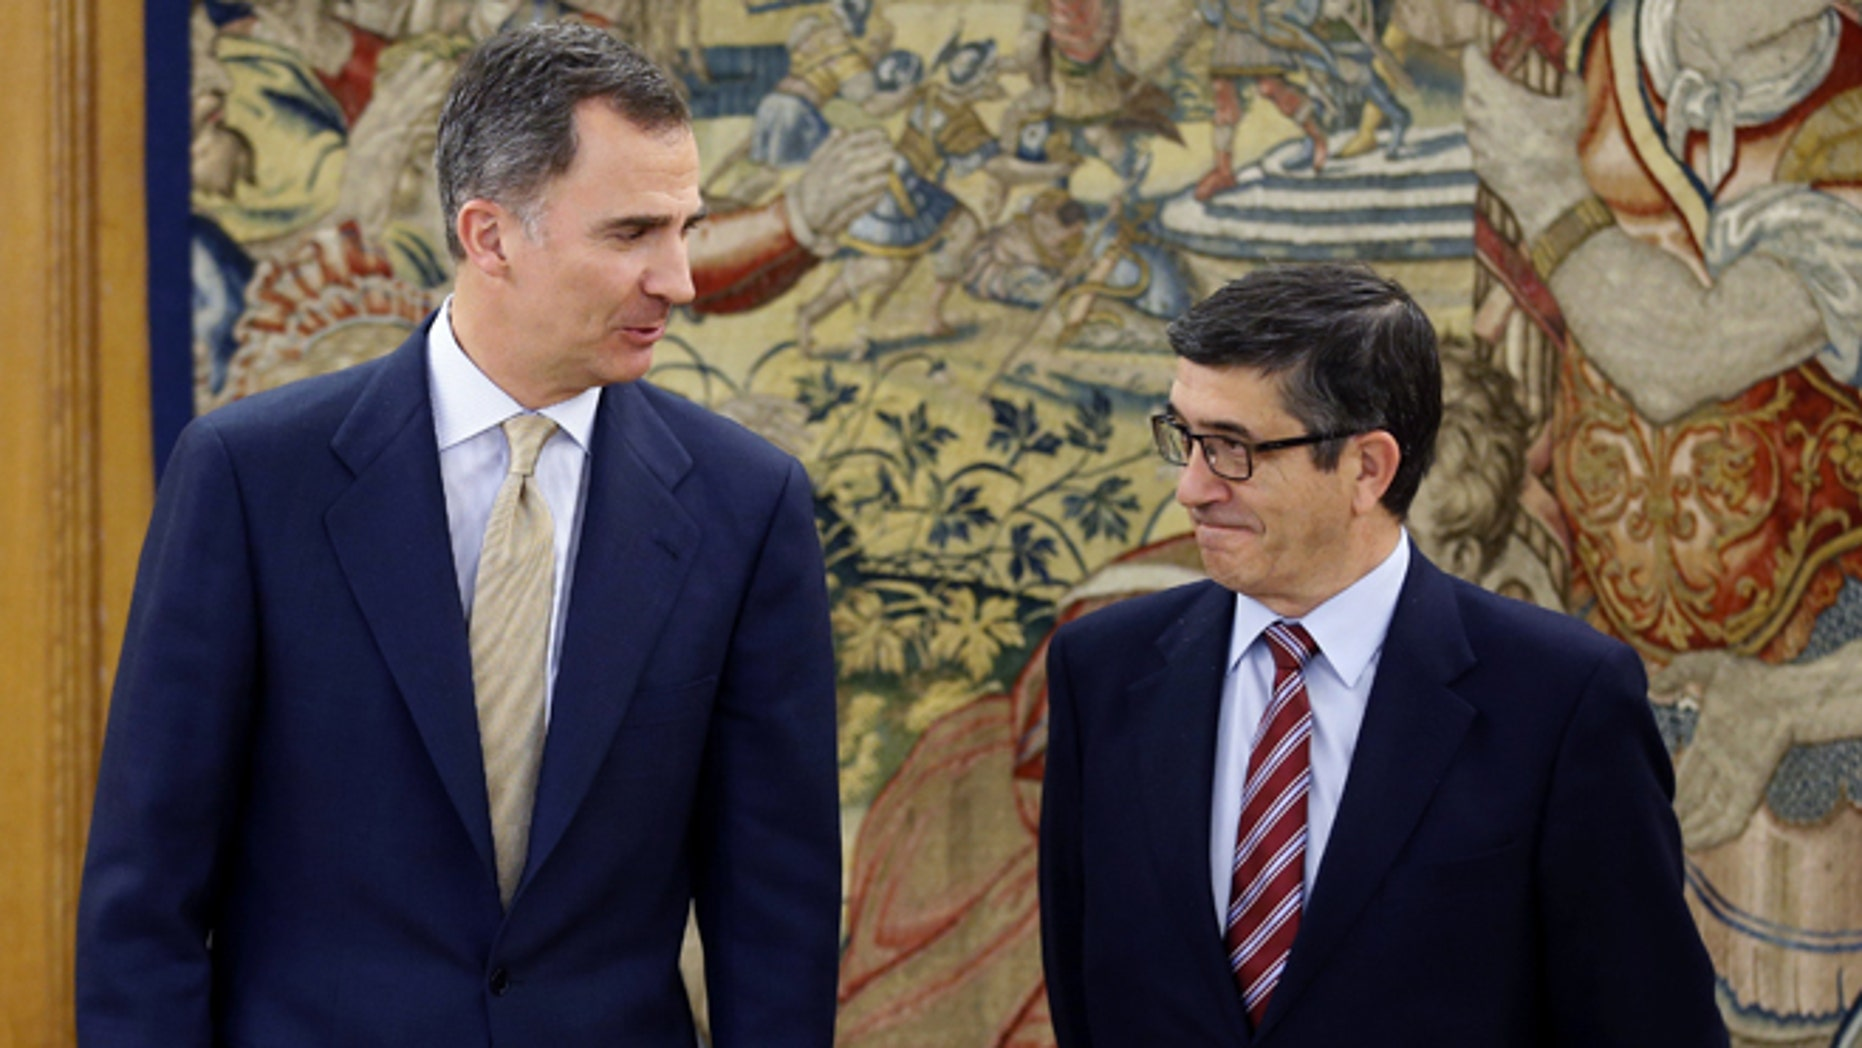 In this April 26, 2016 pool photo, Spain's King Felipe VI speaks with parliament speaker Patxi López, right, during their meeting at Zarzuela Palace in Madrid. Spain's King has signed a decree dissolving parliament and calling elections for June 26 after deputies elected in an inconclusive December election failed to agree on a new prime minister. (AP Photo/ Angel Diaz, Pool)